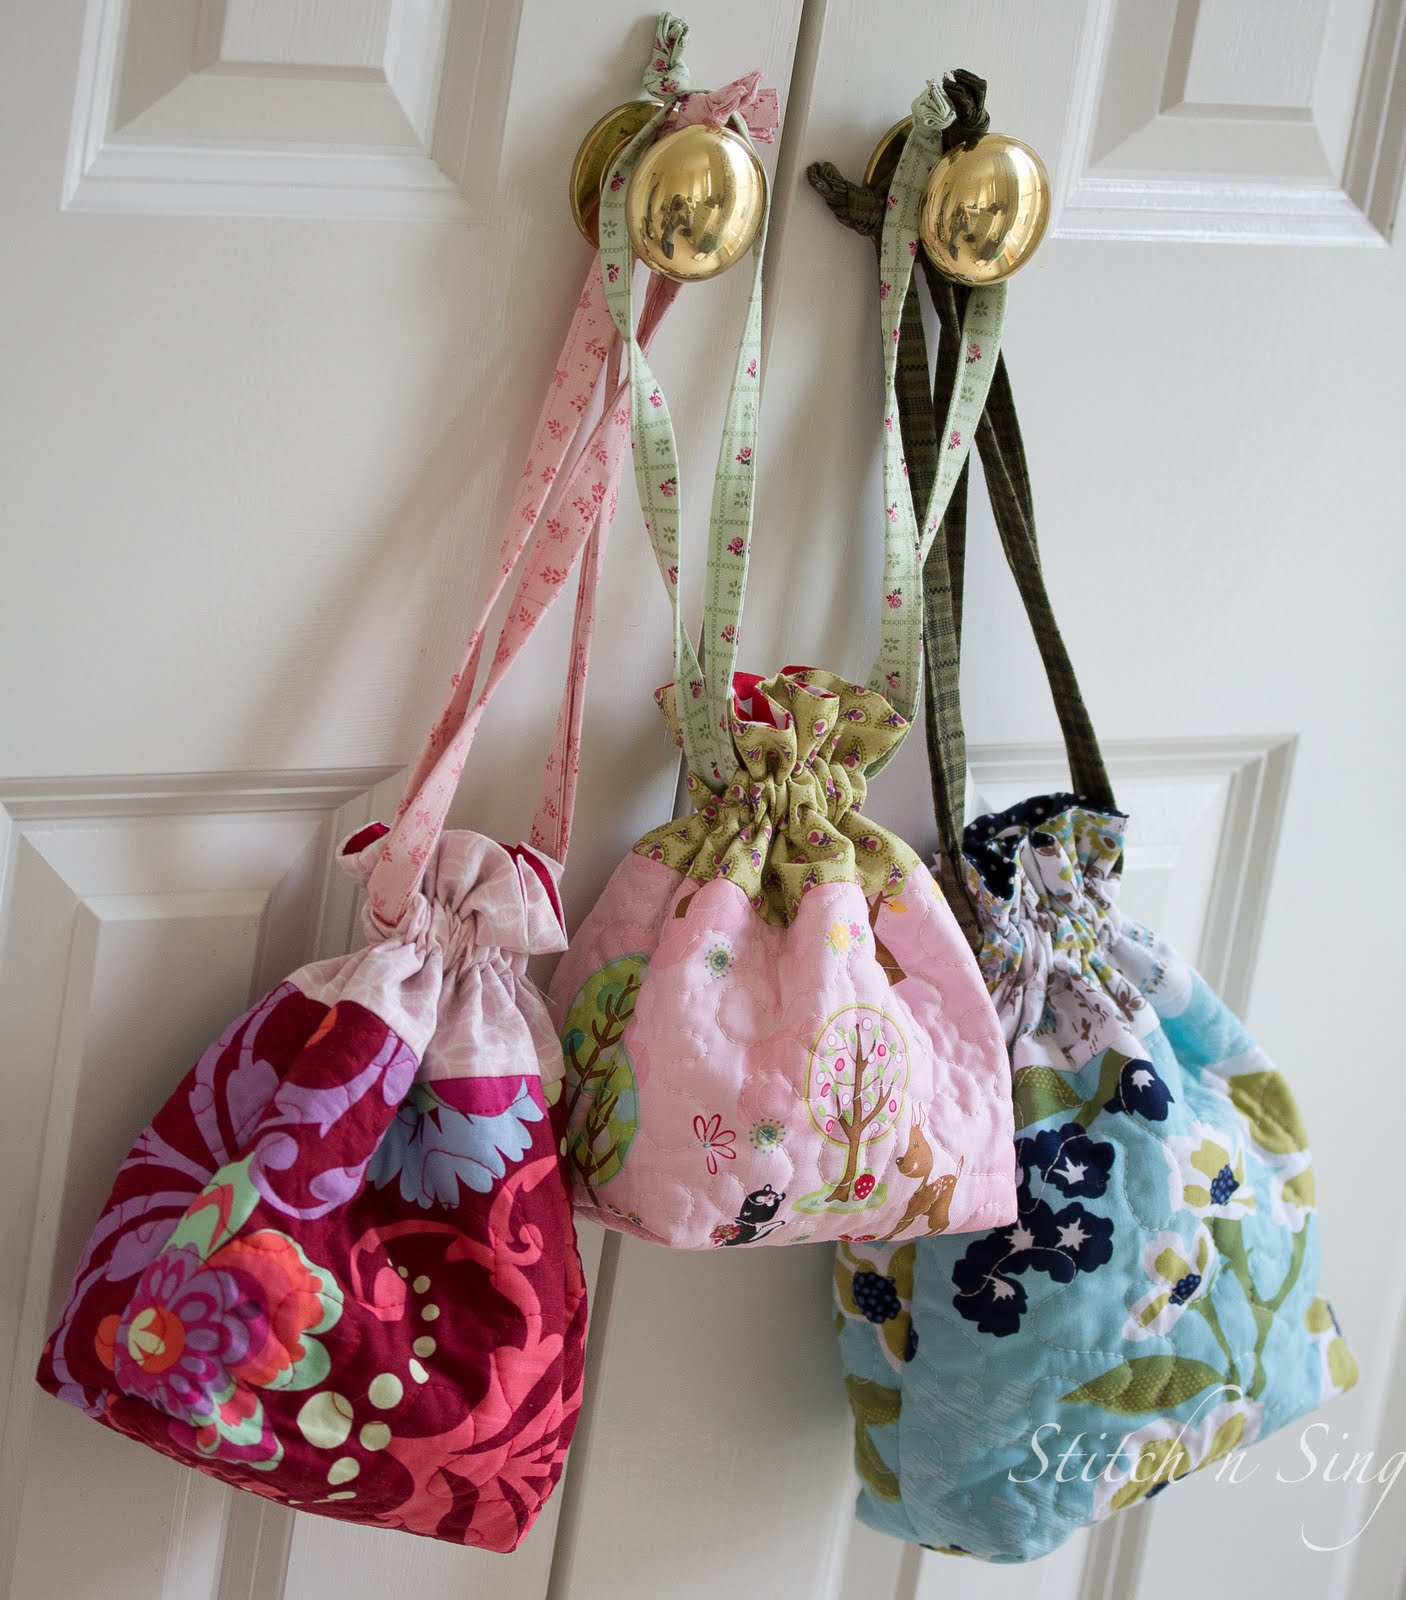 Stitch n Sing: Quilted Drawstring Bags